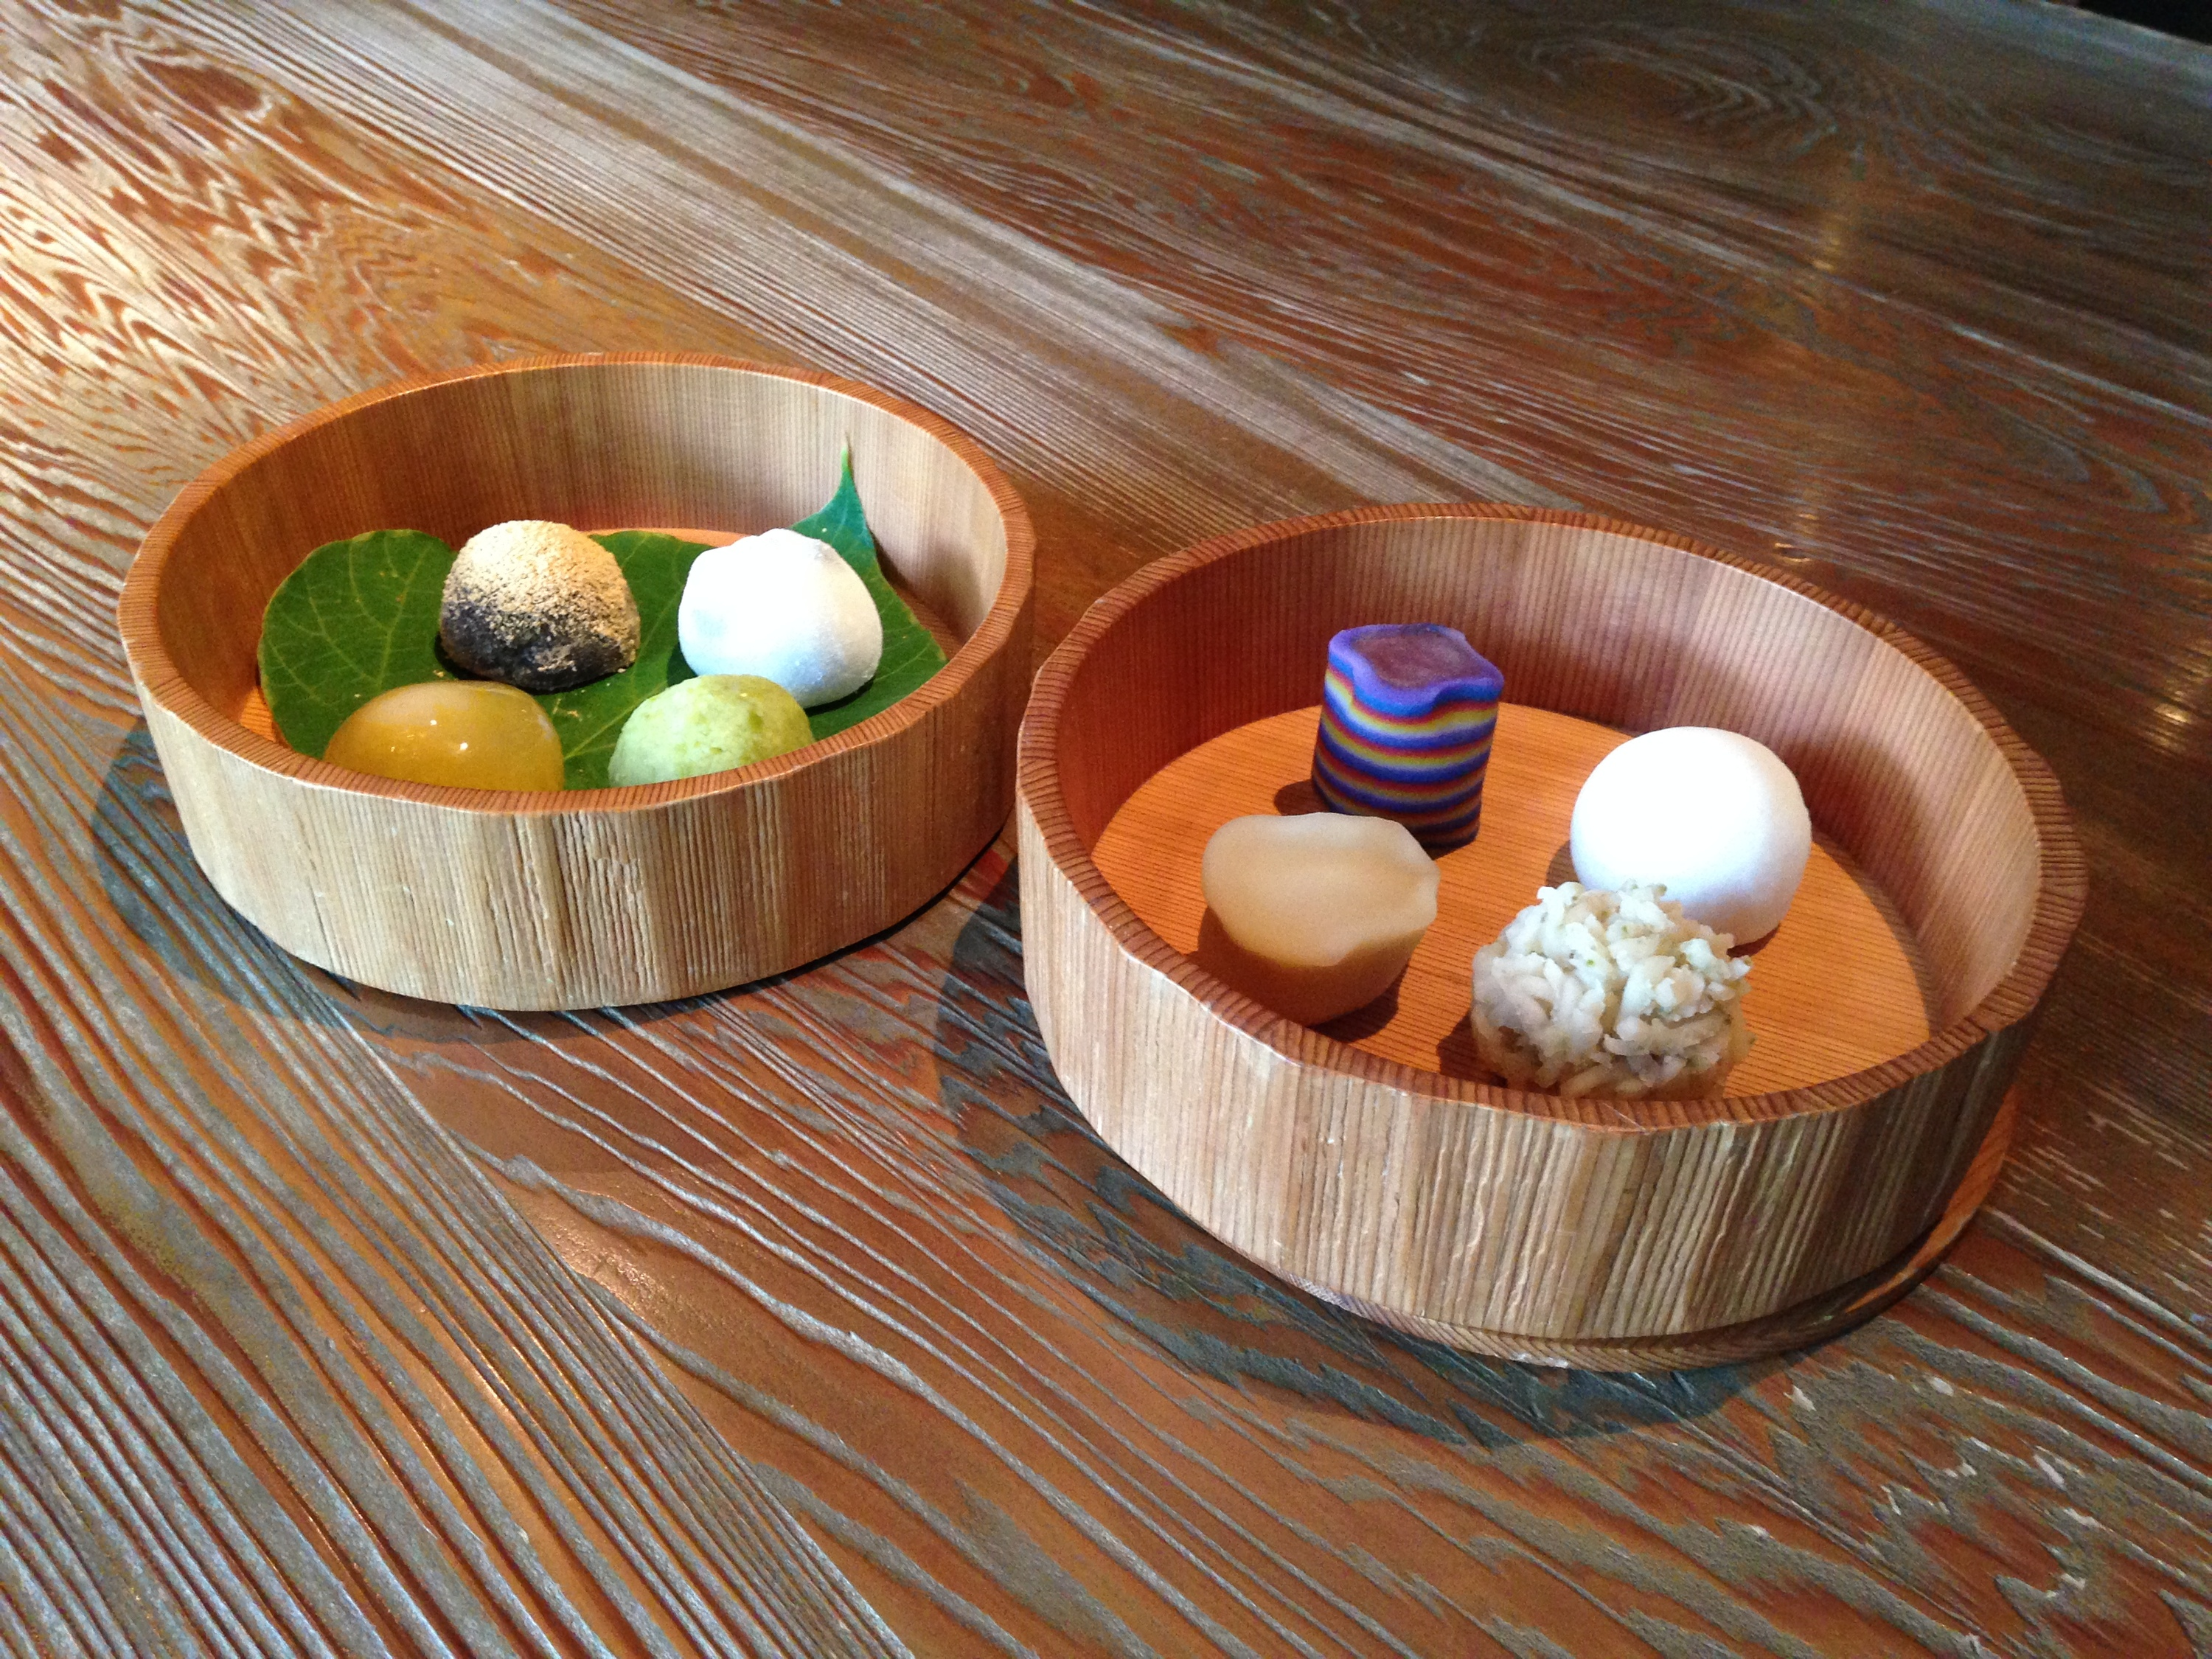 Wagashi will refine your sweet tooth